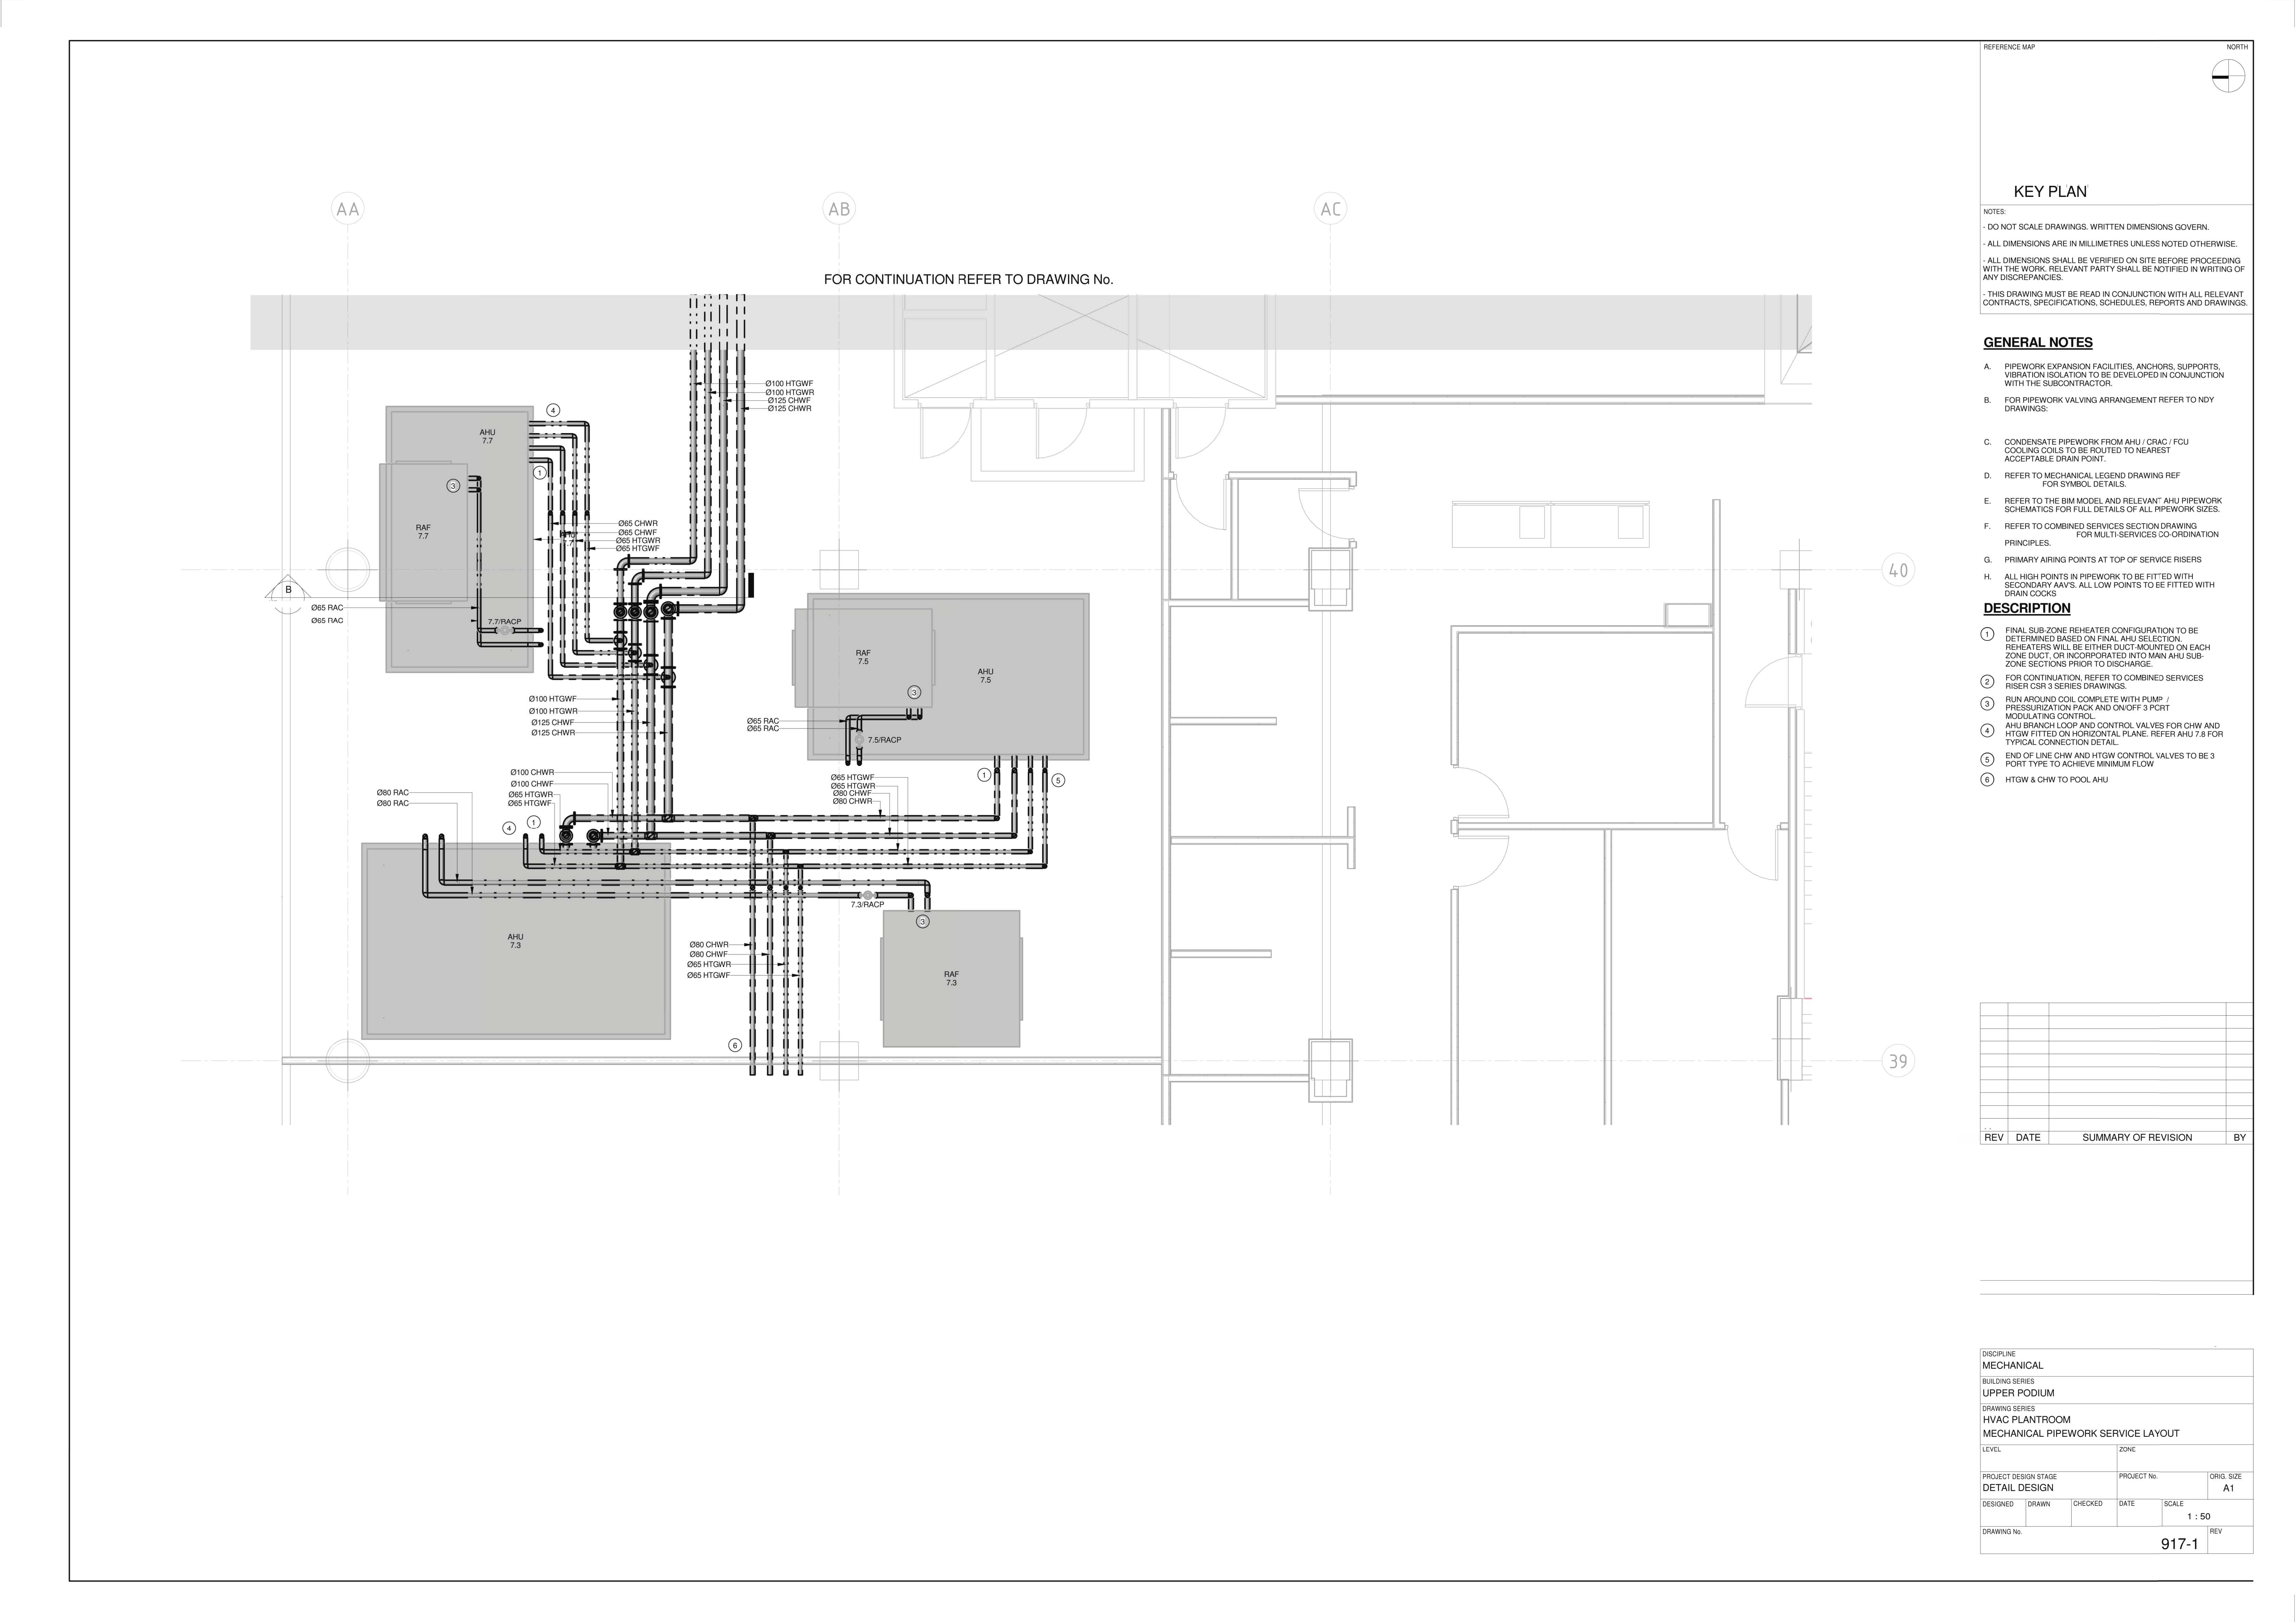 Mechanical Pipework Service Layout 1